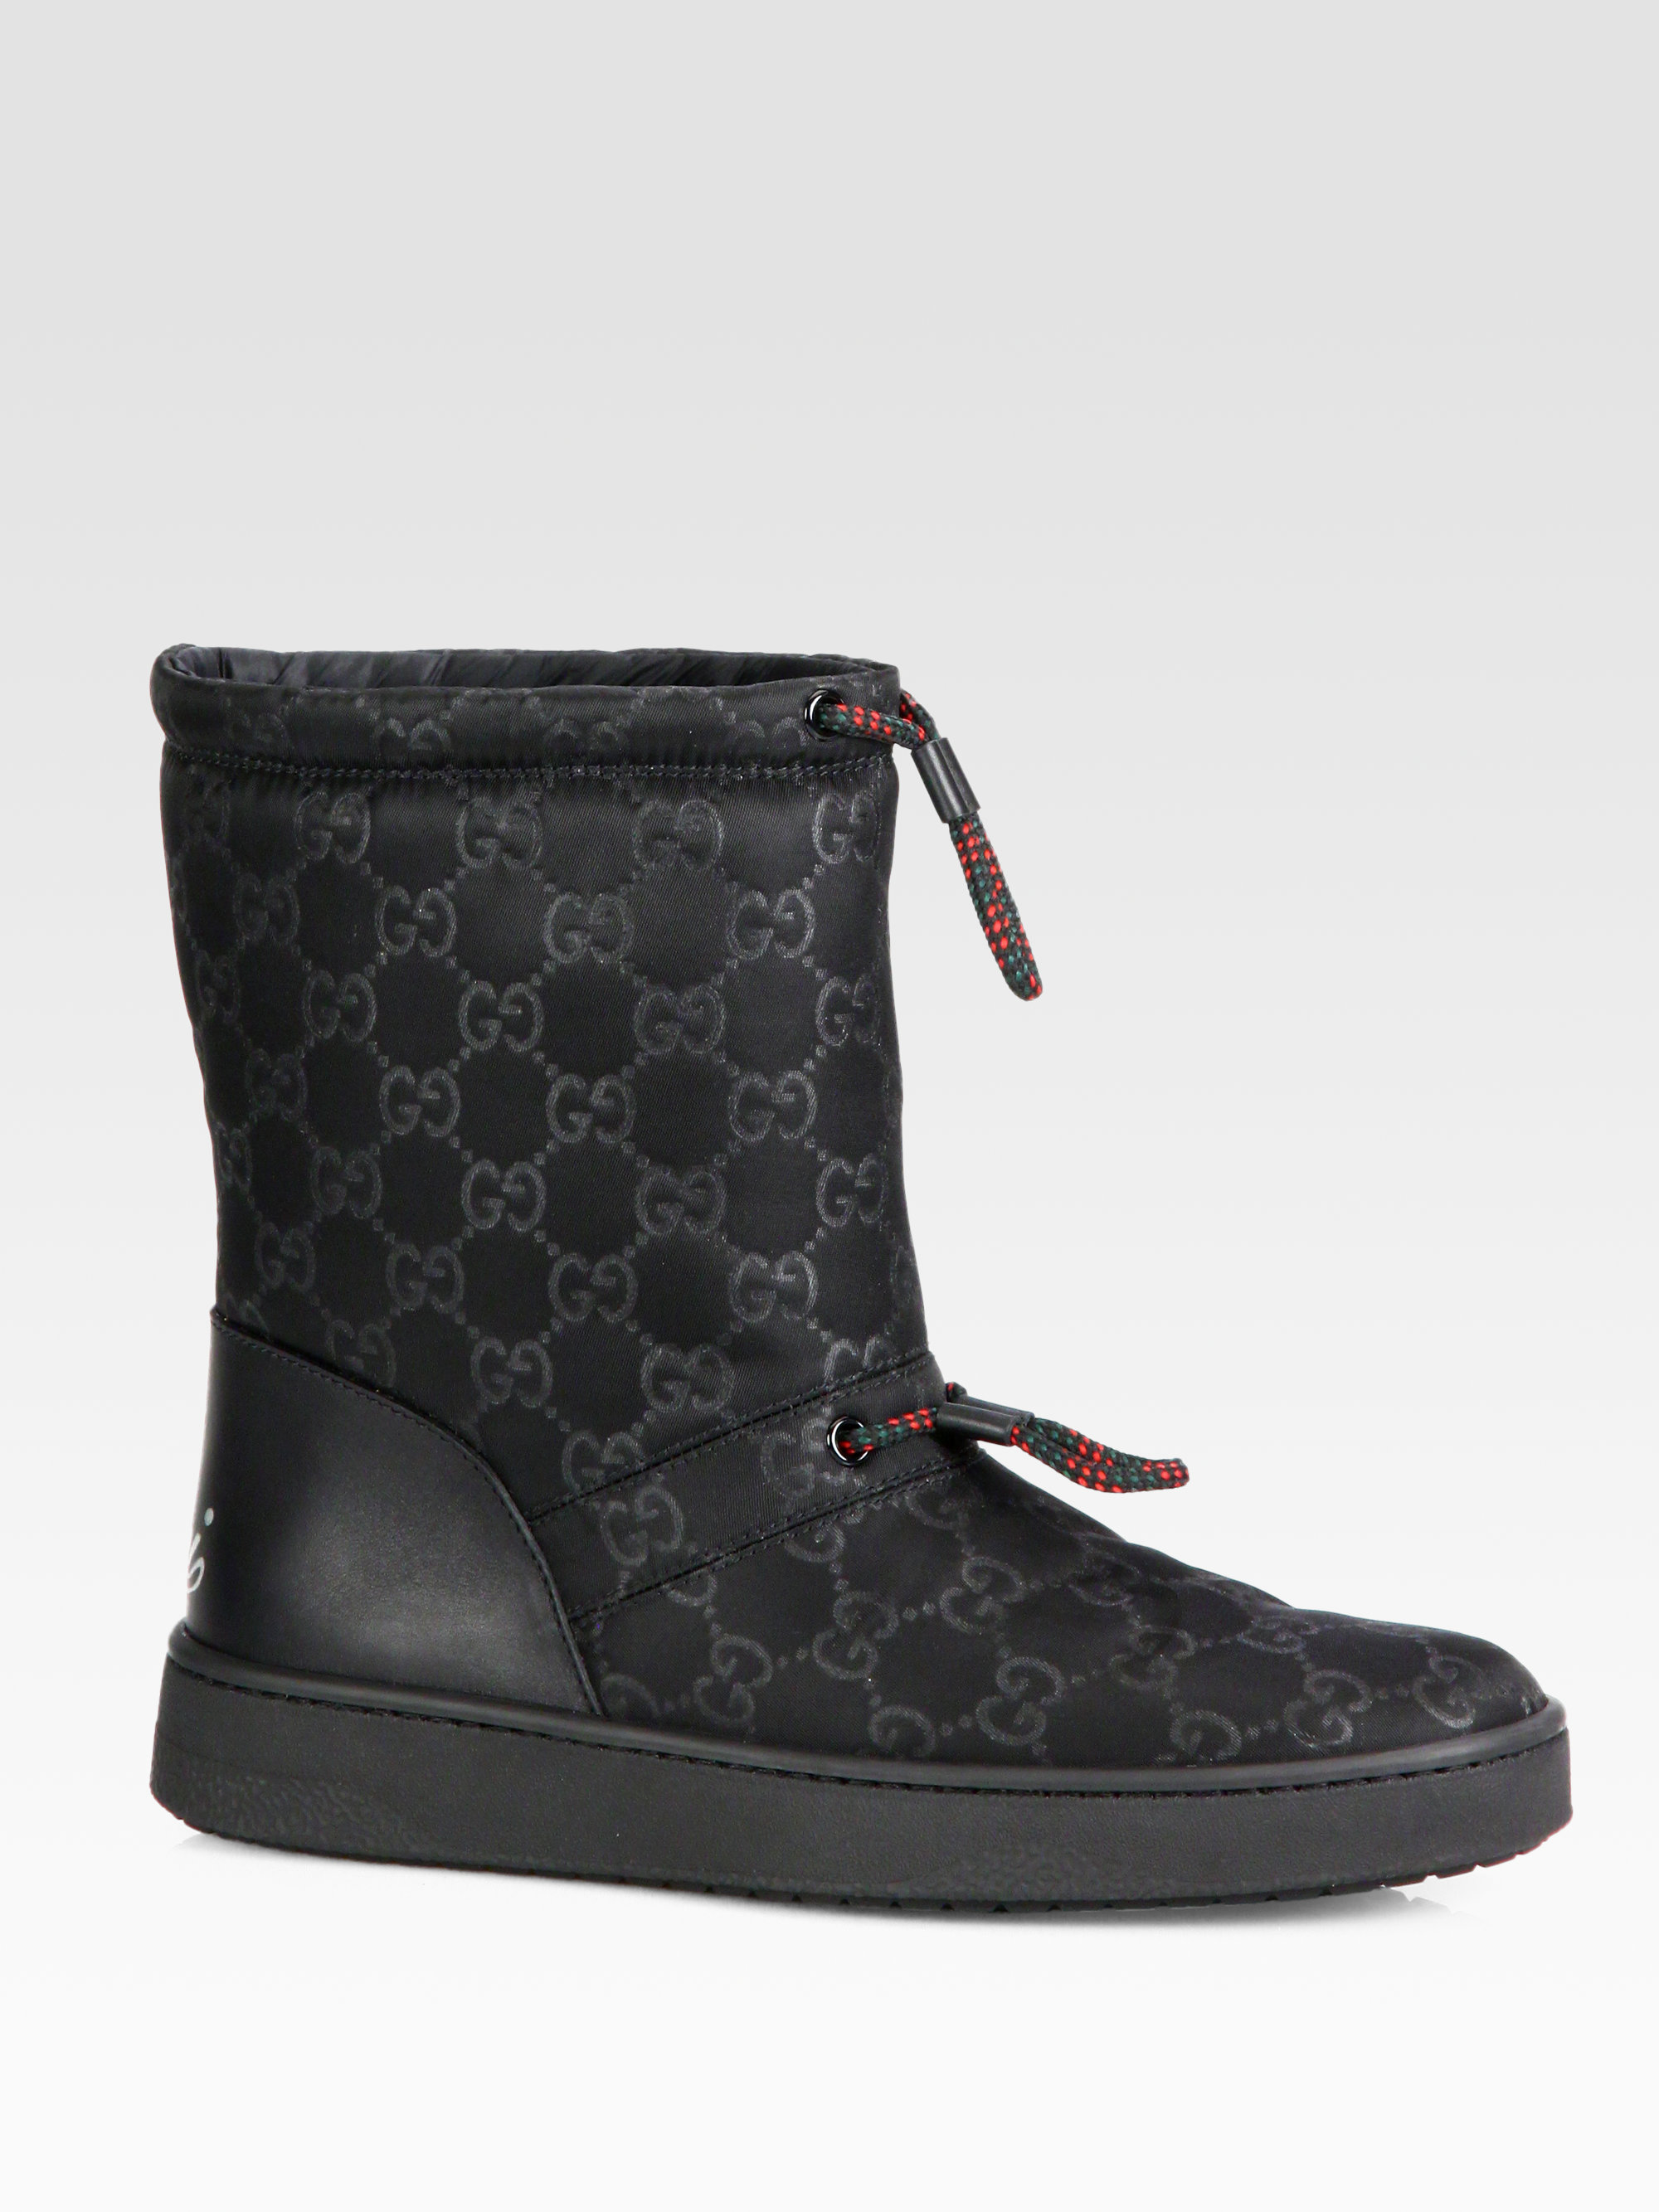 Lyst Gucci Sima Leather Trimmed Snow Boots In Black